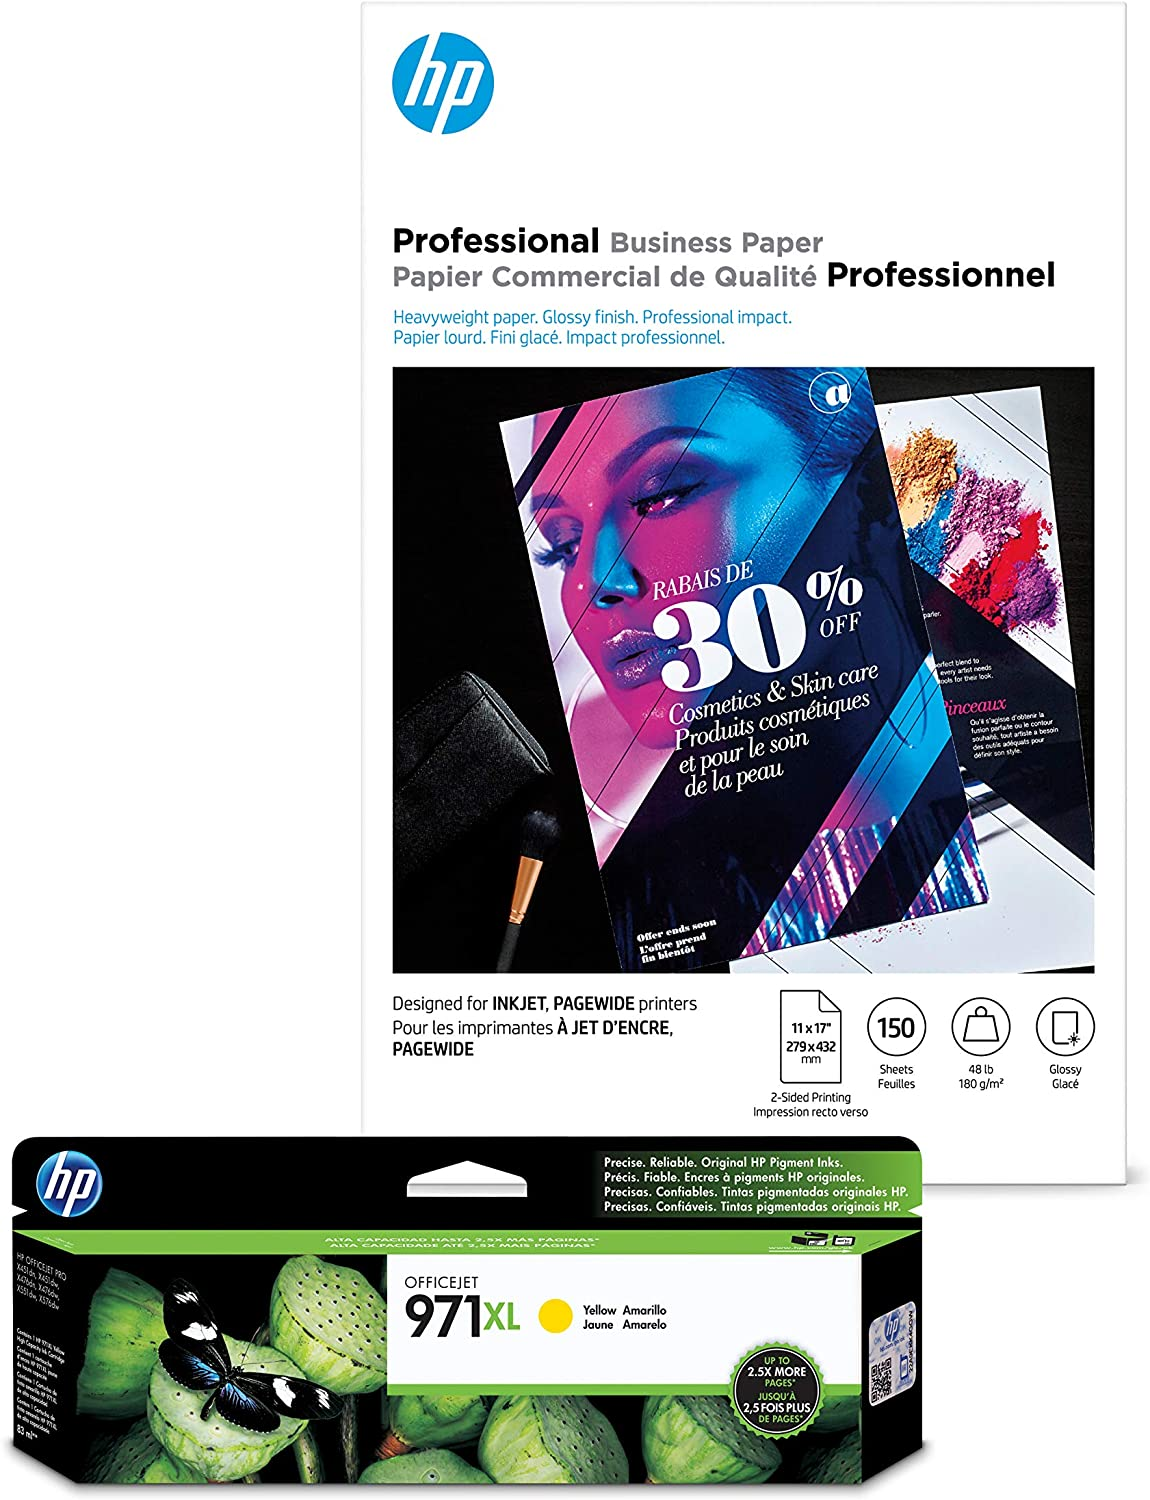 HP 970XL Yellow Ink + HP Professional Business Paper, Glossy, Inkjet, 11x17, 150 sheets